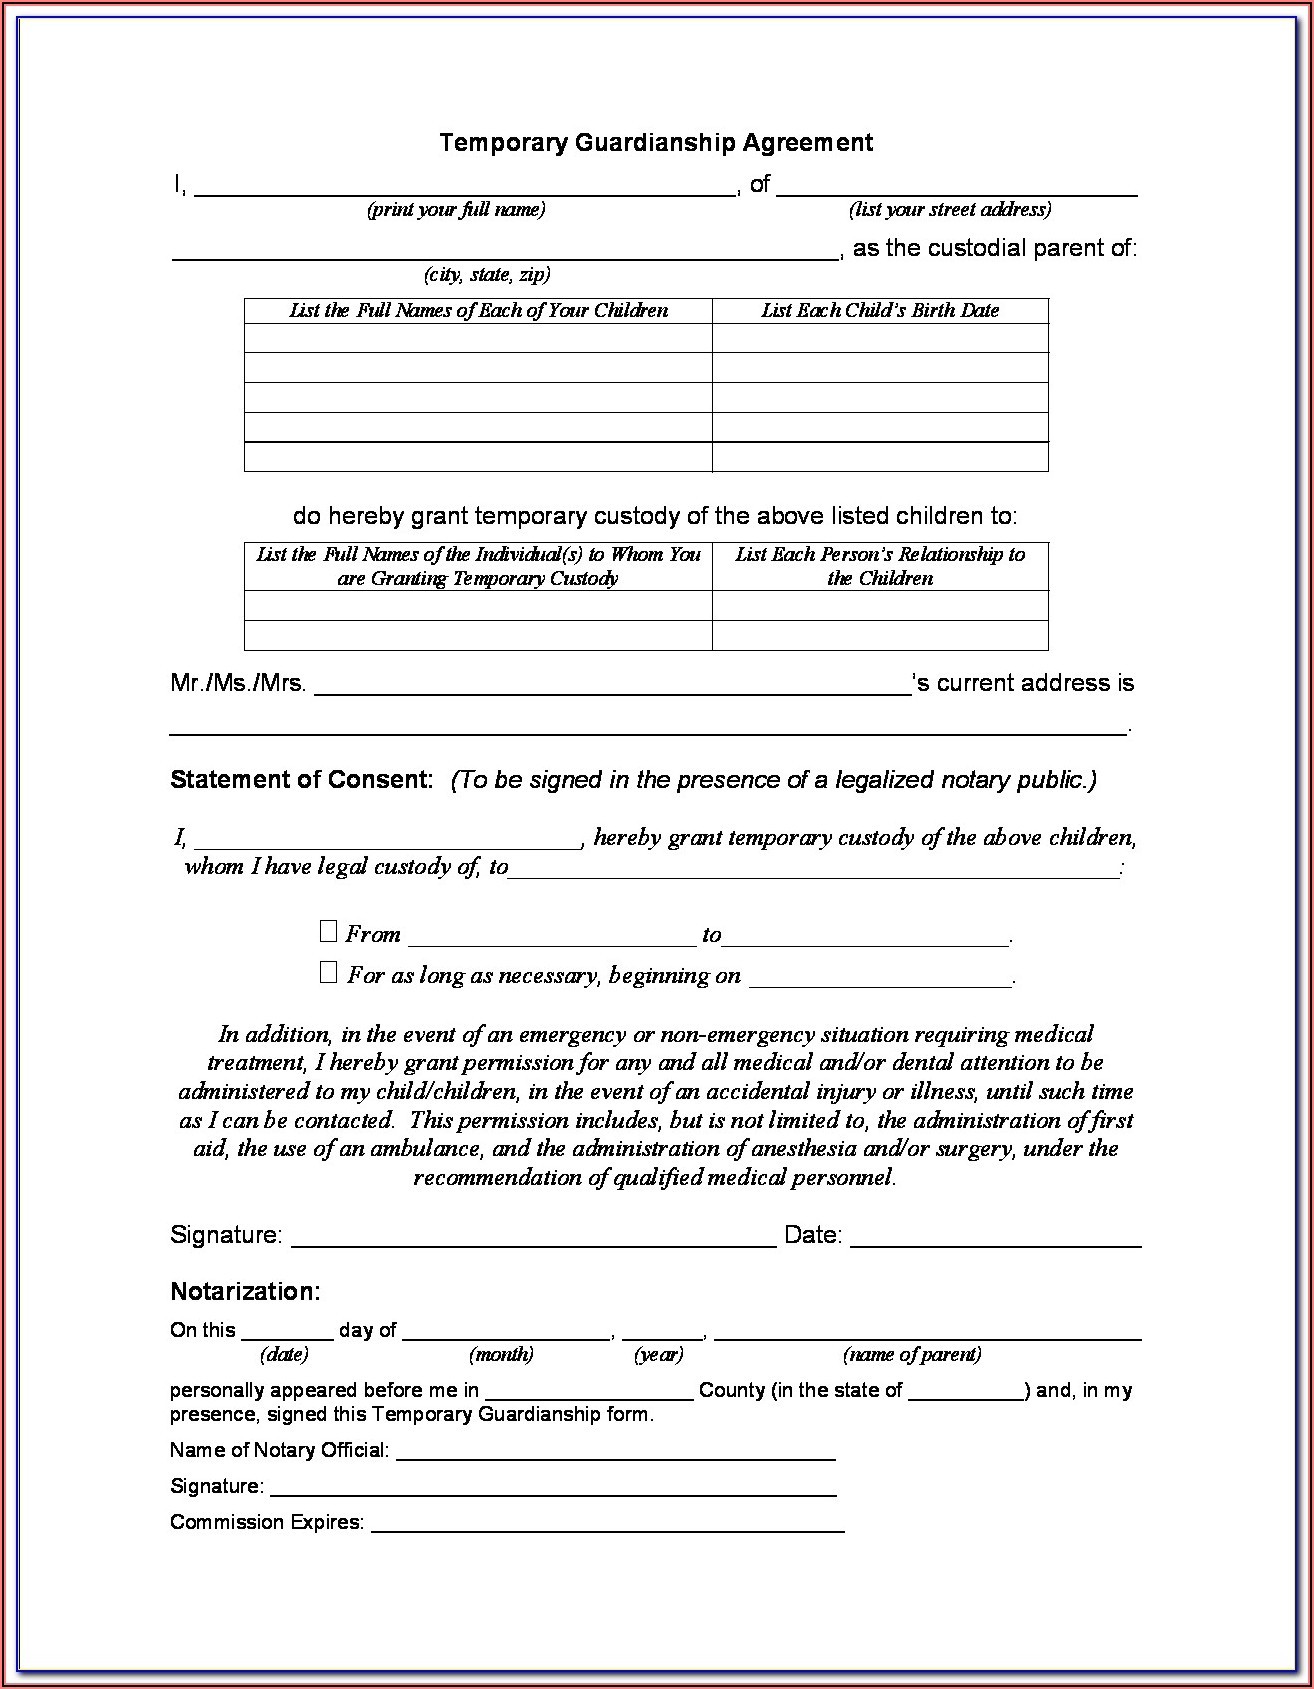 Kentucky Temporary Guardianship Agreement Form